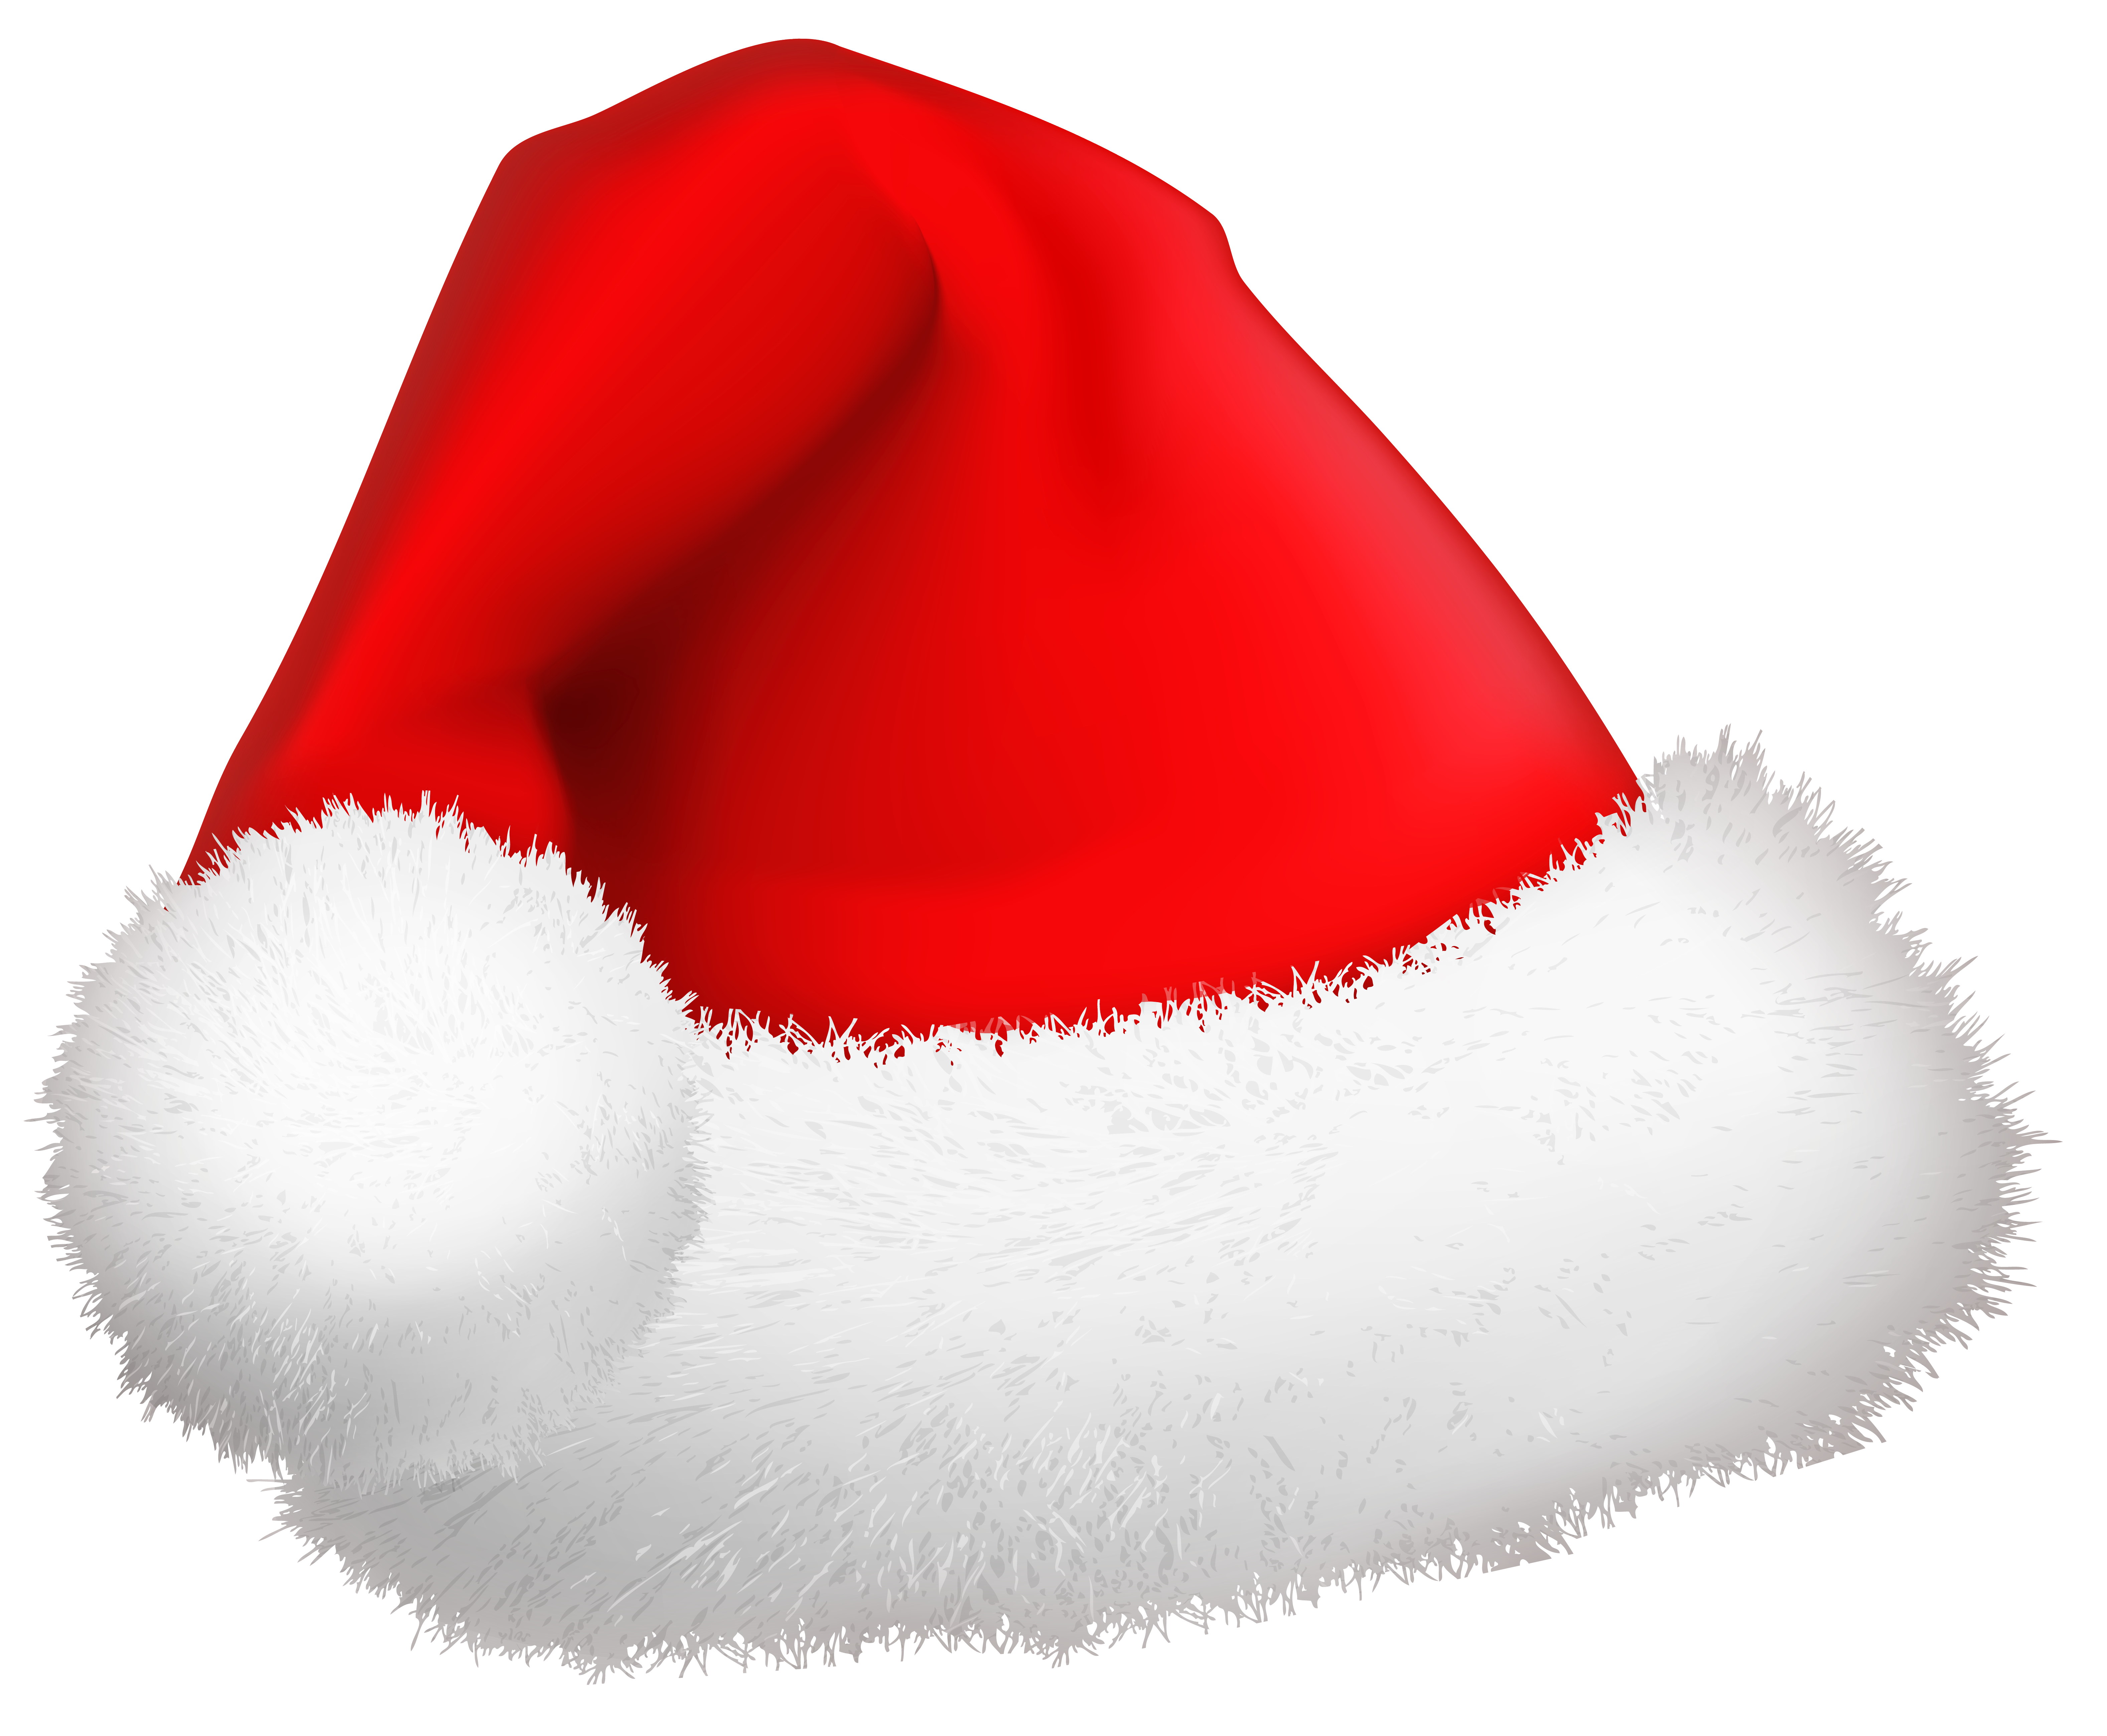 Cartoon christmas hat png. Santa clip art image